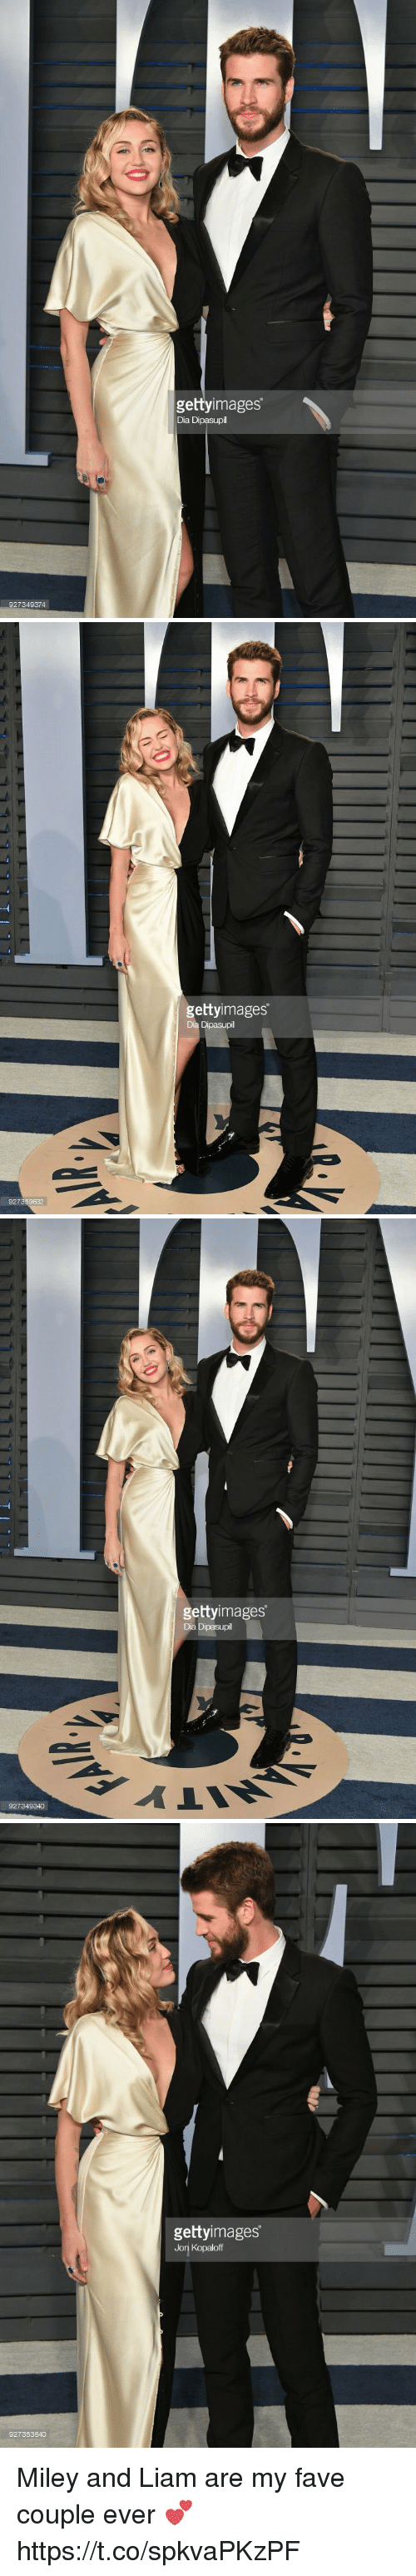 Miley Cyrus, Fave, and Girl Memes: gettyimages  Dia  927349374   gettyimages  927359632   gettyimages  Dia  927349340   gettyimages  Jon Kopaloff  927353640 Miley and Liam are my fave couple ever 💕 https://t.co/spkvaPKzPF